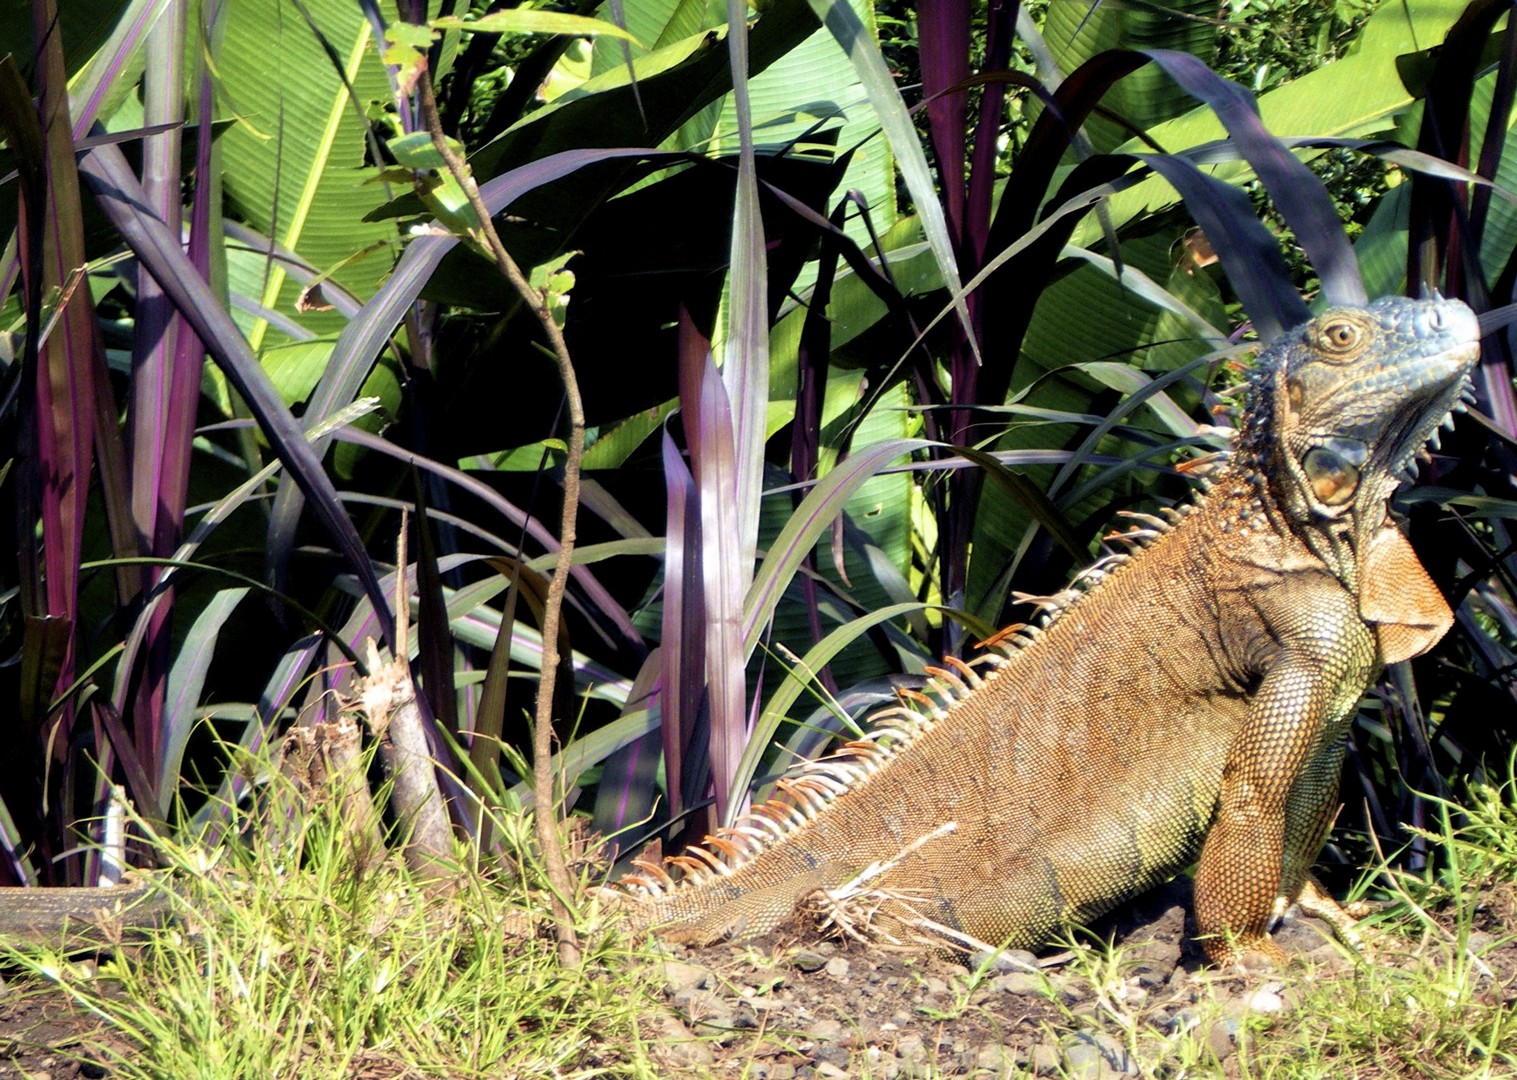 iguana-wildlife-costa-rica-guided-family-cycling-holiday.jpg - Costa Rica - Volcanoes and Valleys - Family Cycling